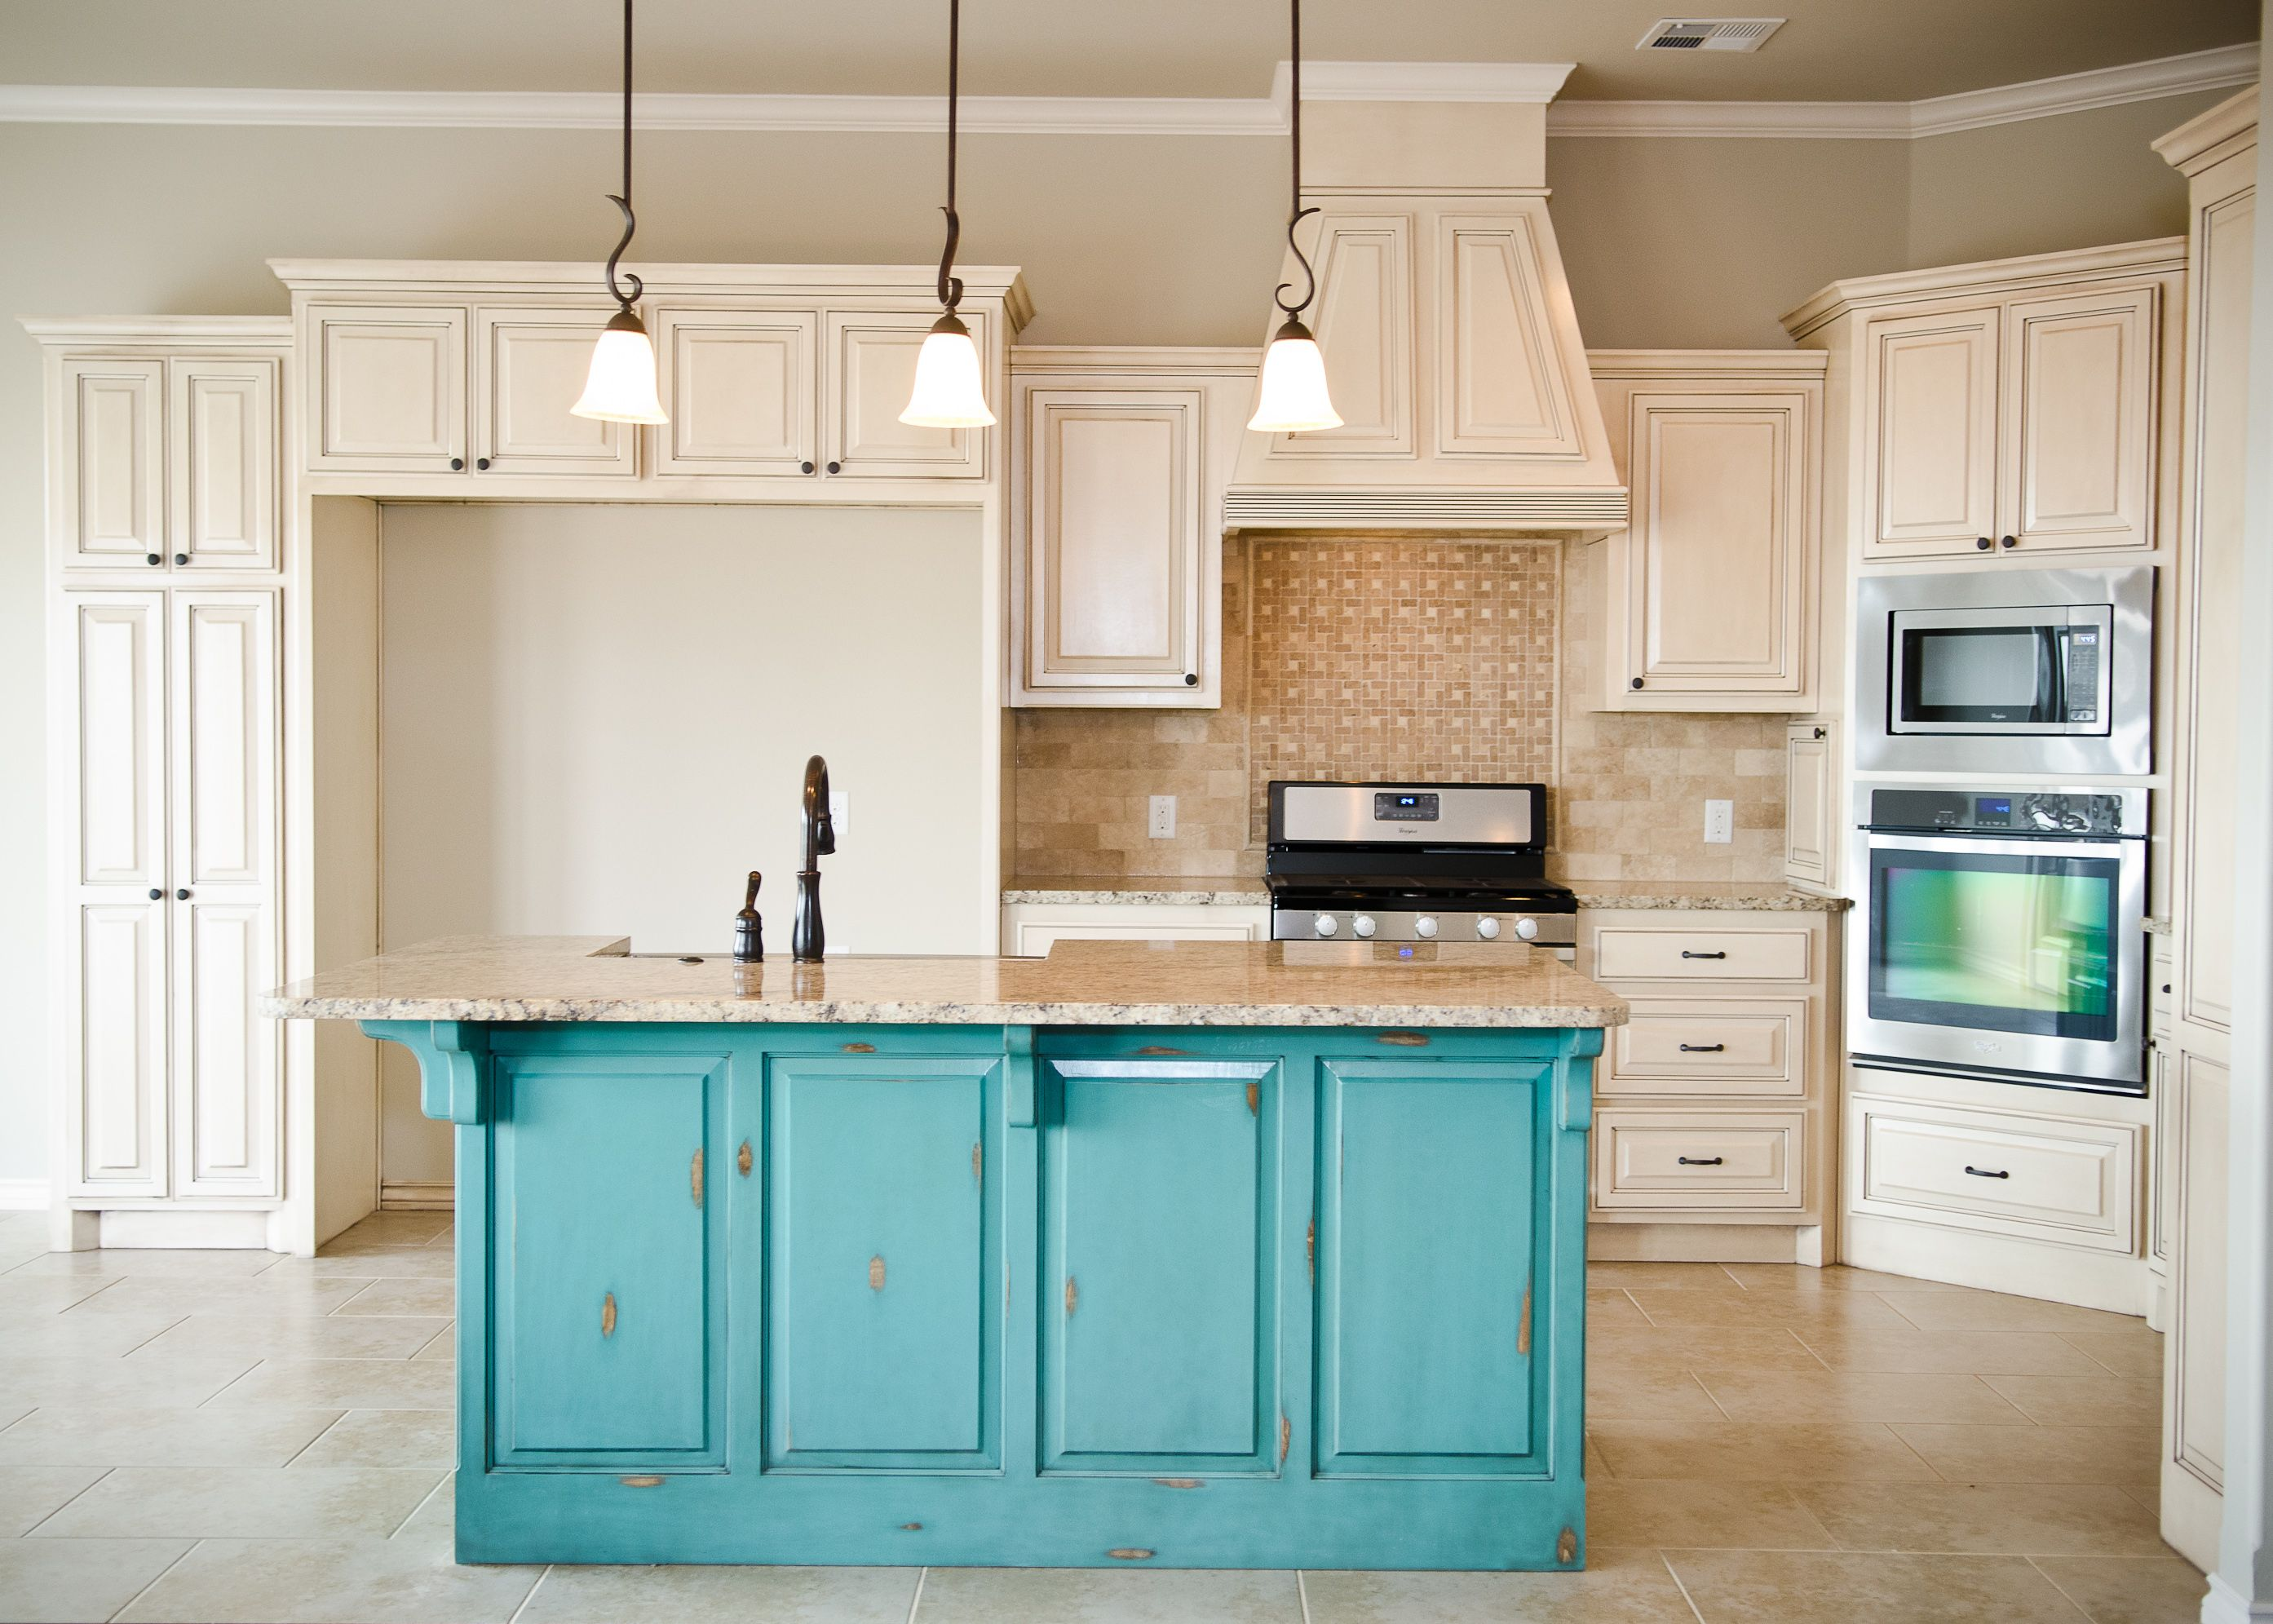 Splash of Color as Kitchen Cabinets - Ward Log Homes | Home ideas ...